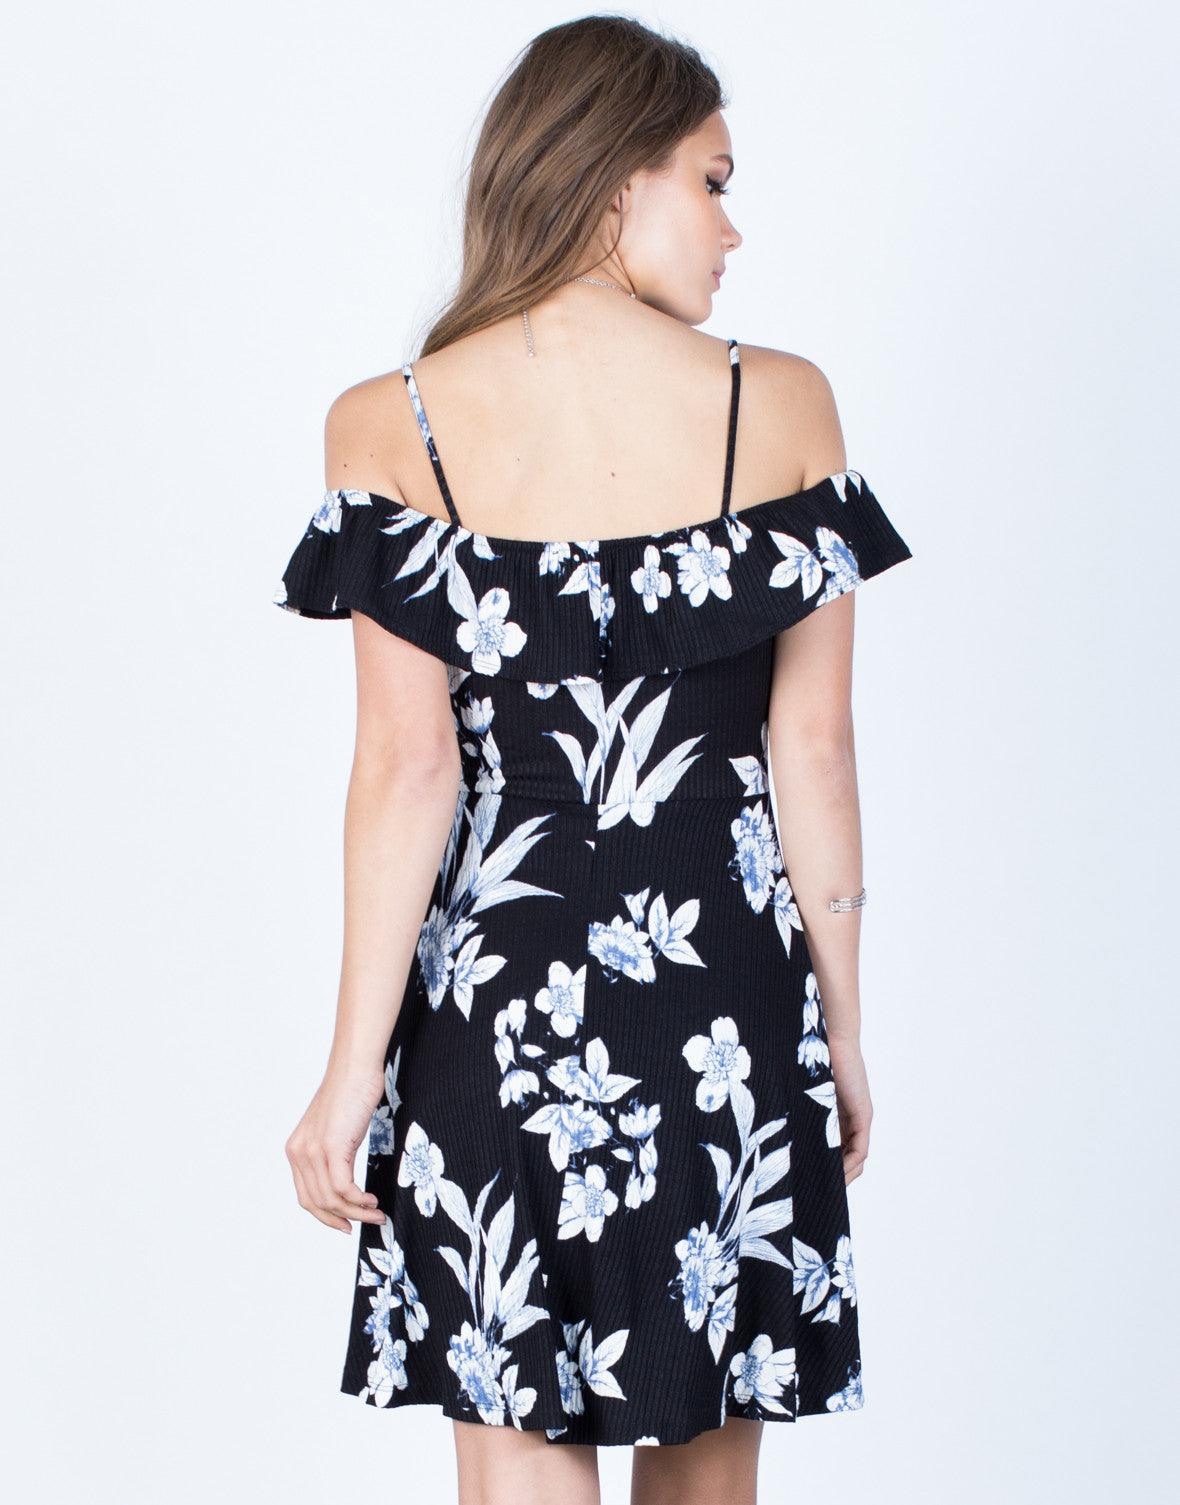 Back View of Midnight Floral Dress